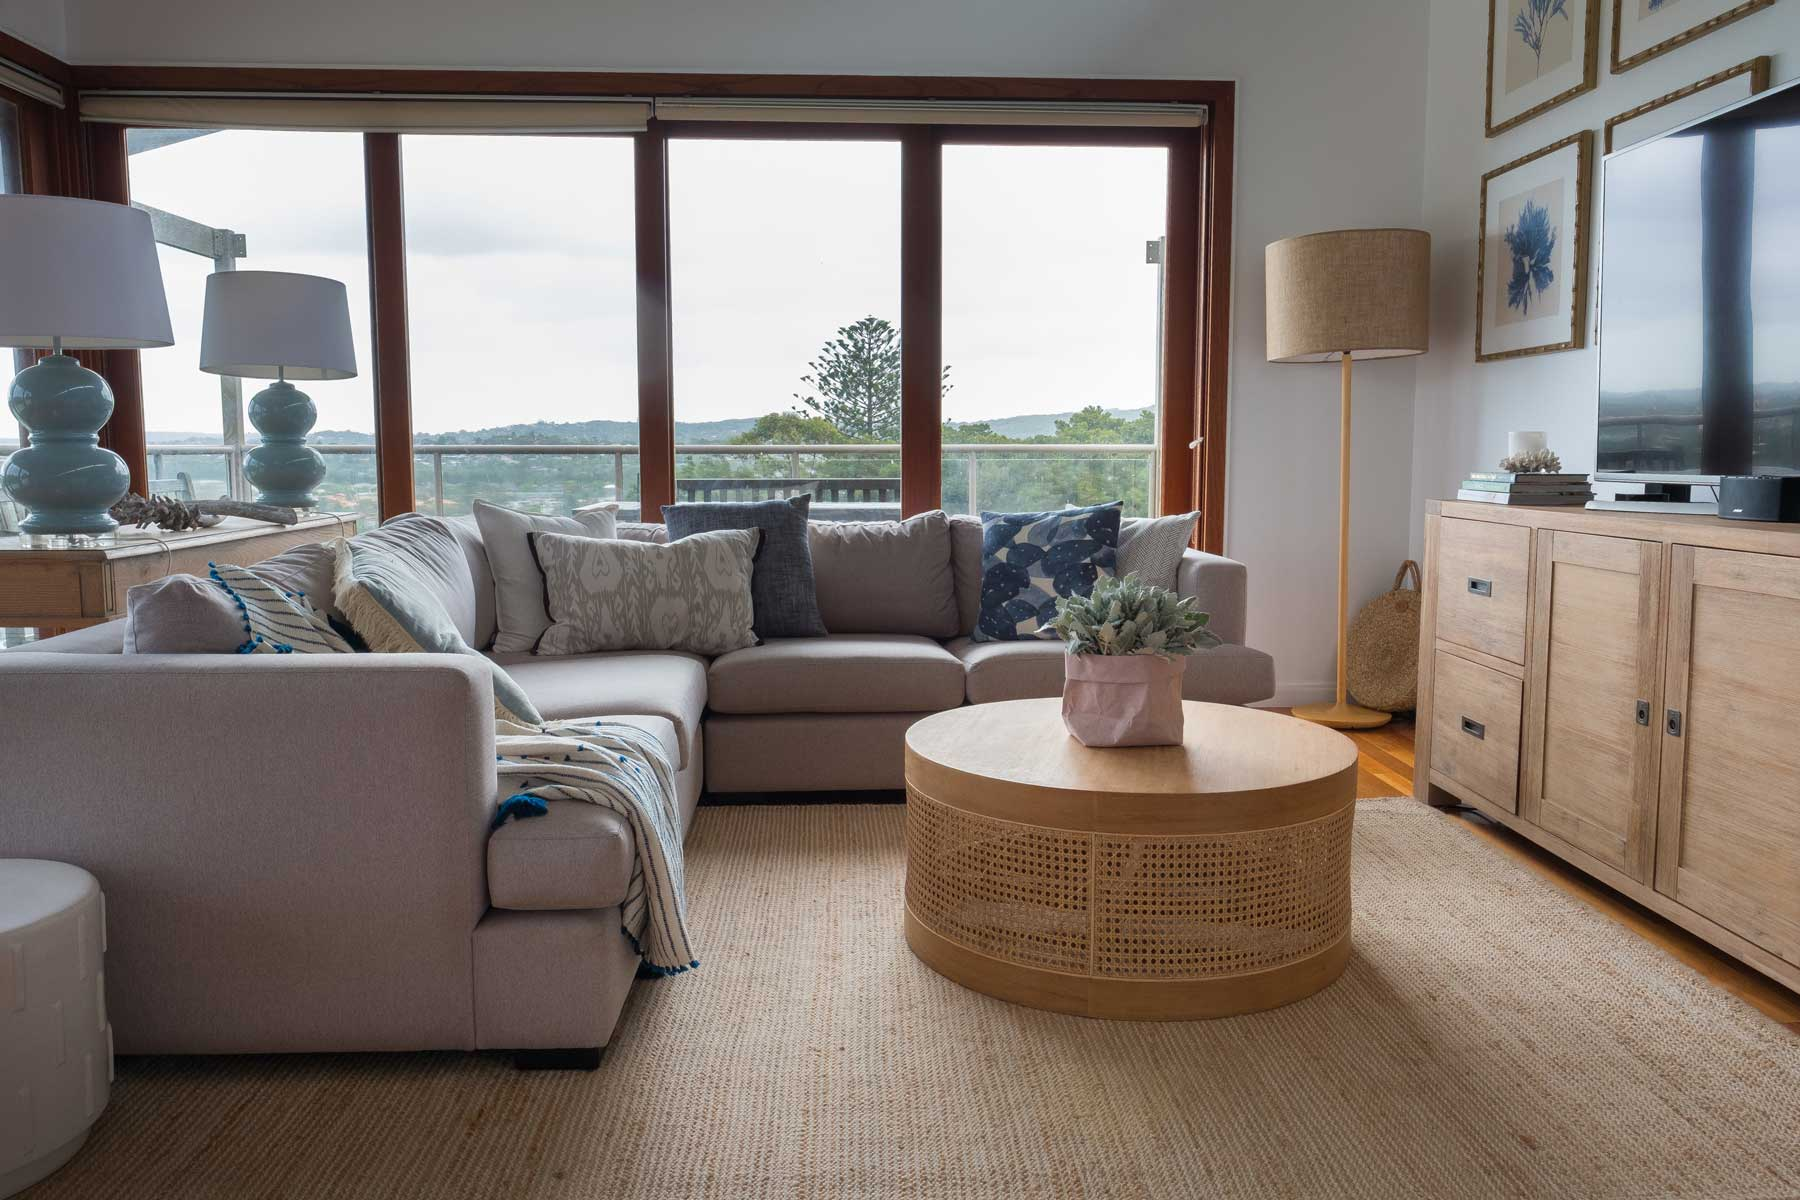 Pippa's Open Plan Coastal Retreat - after - couch